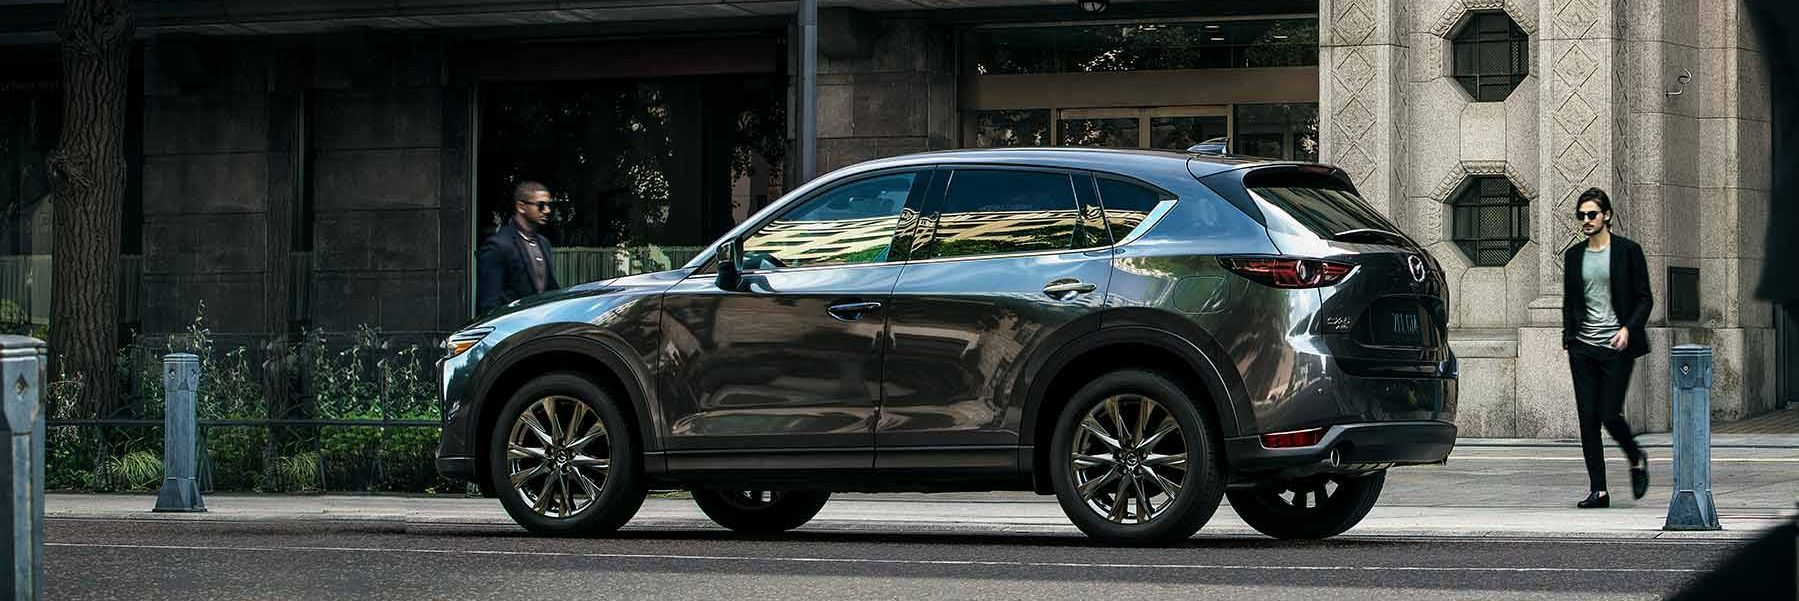 2019 Mazda CX-5 Financing near New Braunfels, TX